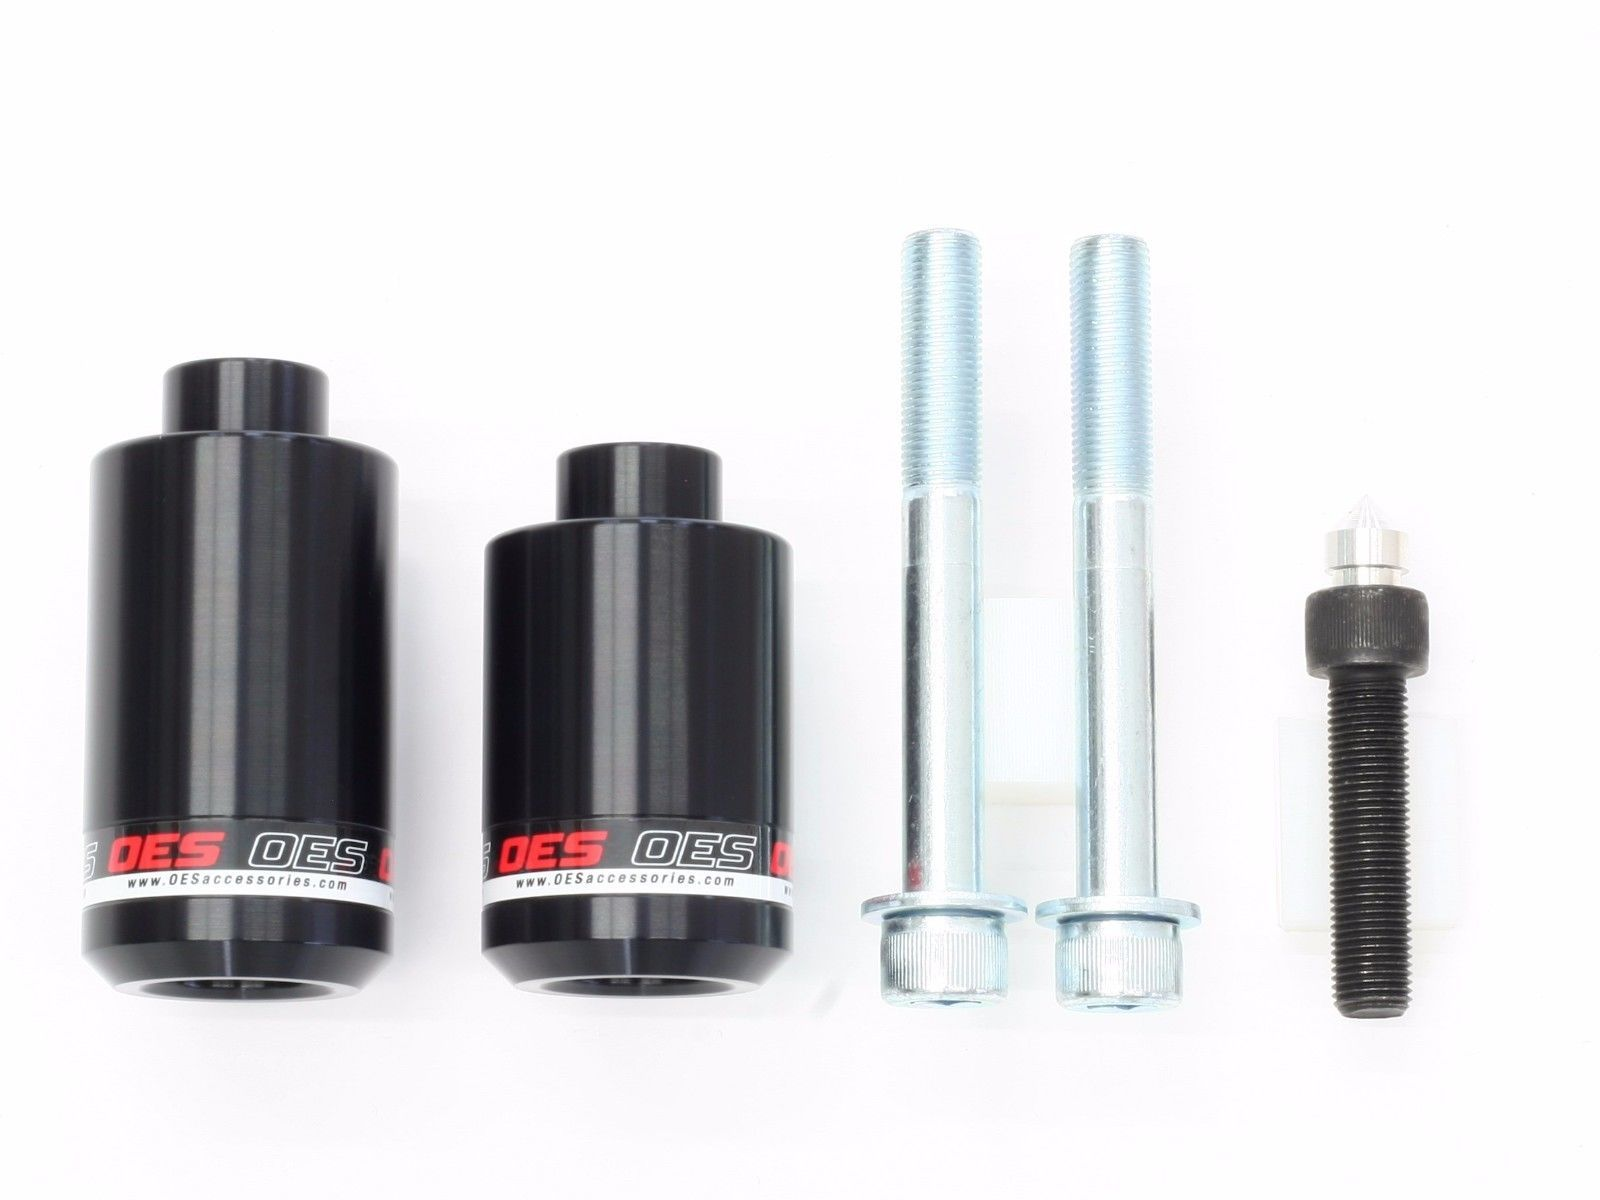 OES Frame Sliders 09 10 11 12 13 14 15 CBR 600RR 600 RR With Hole Alignment Tool